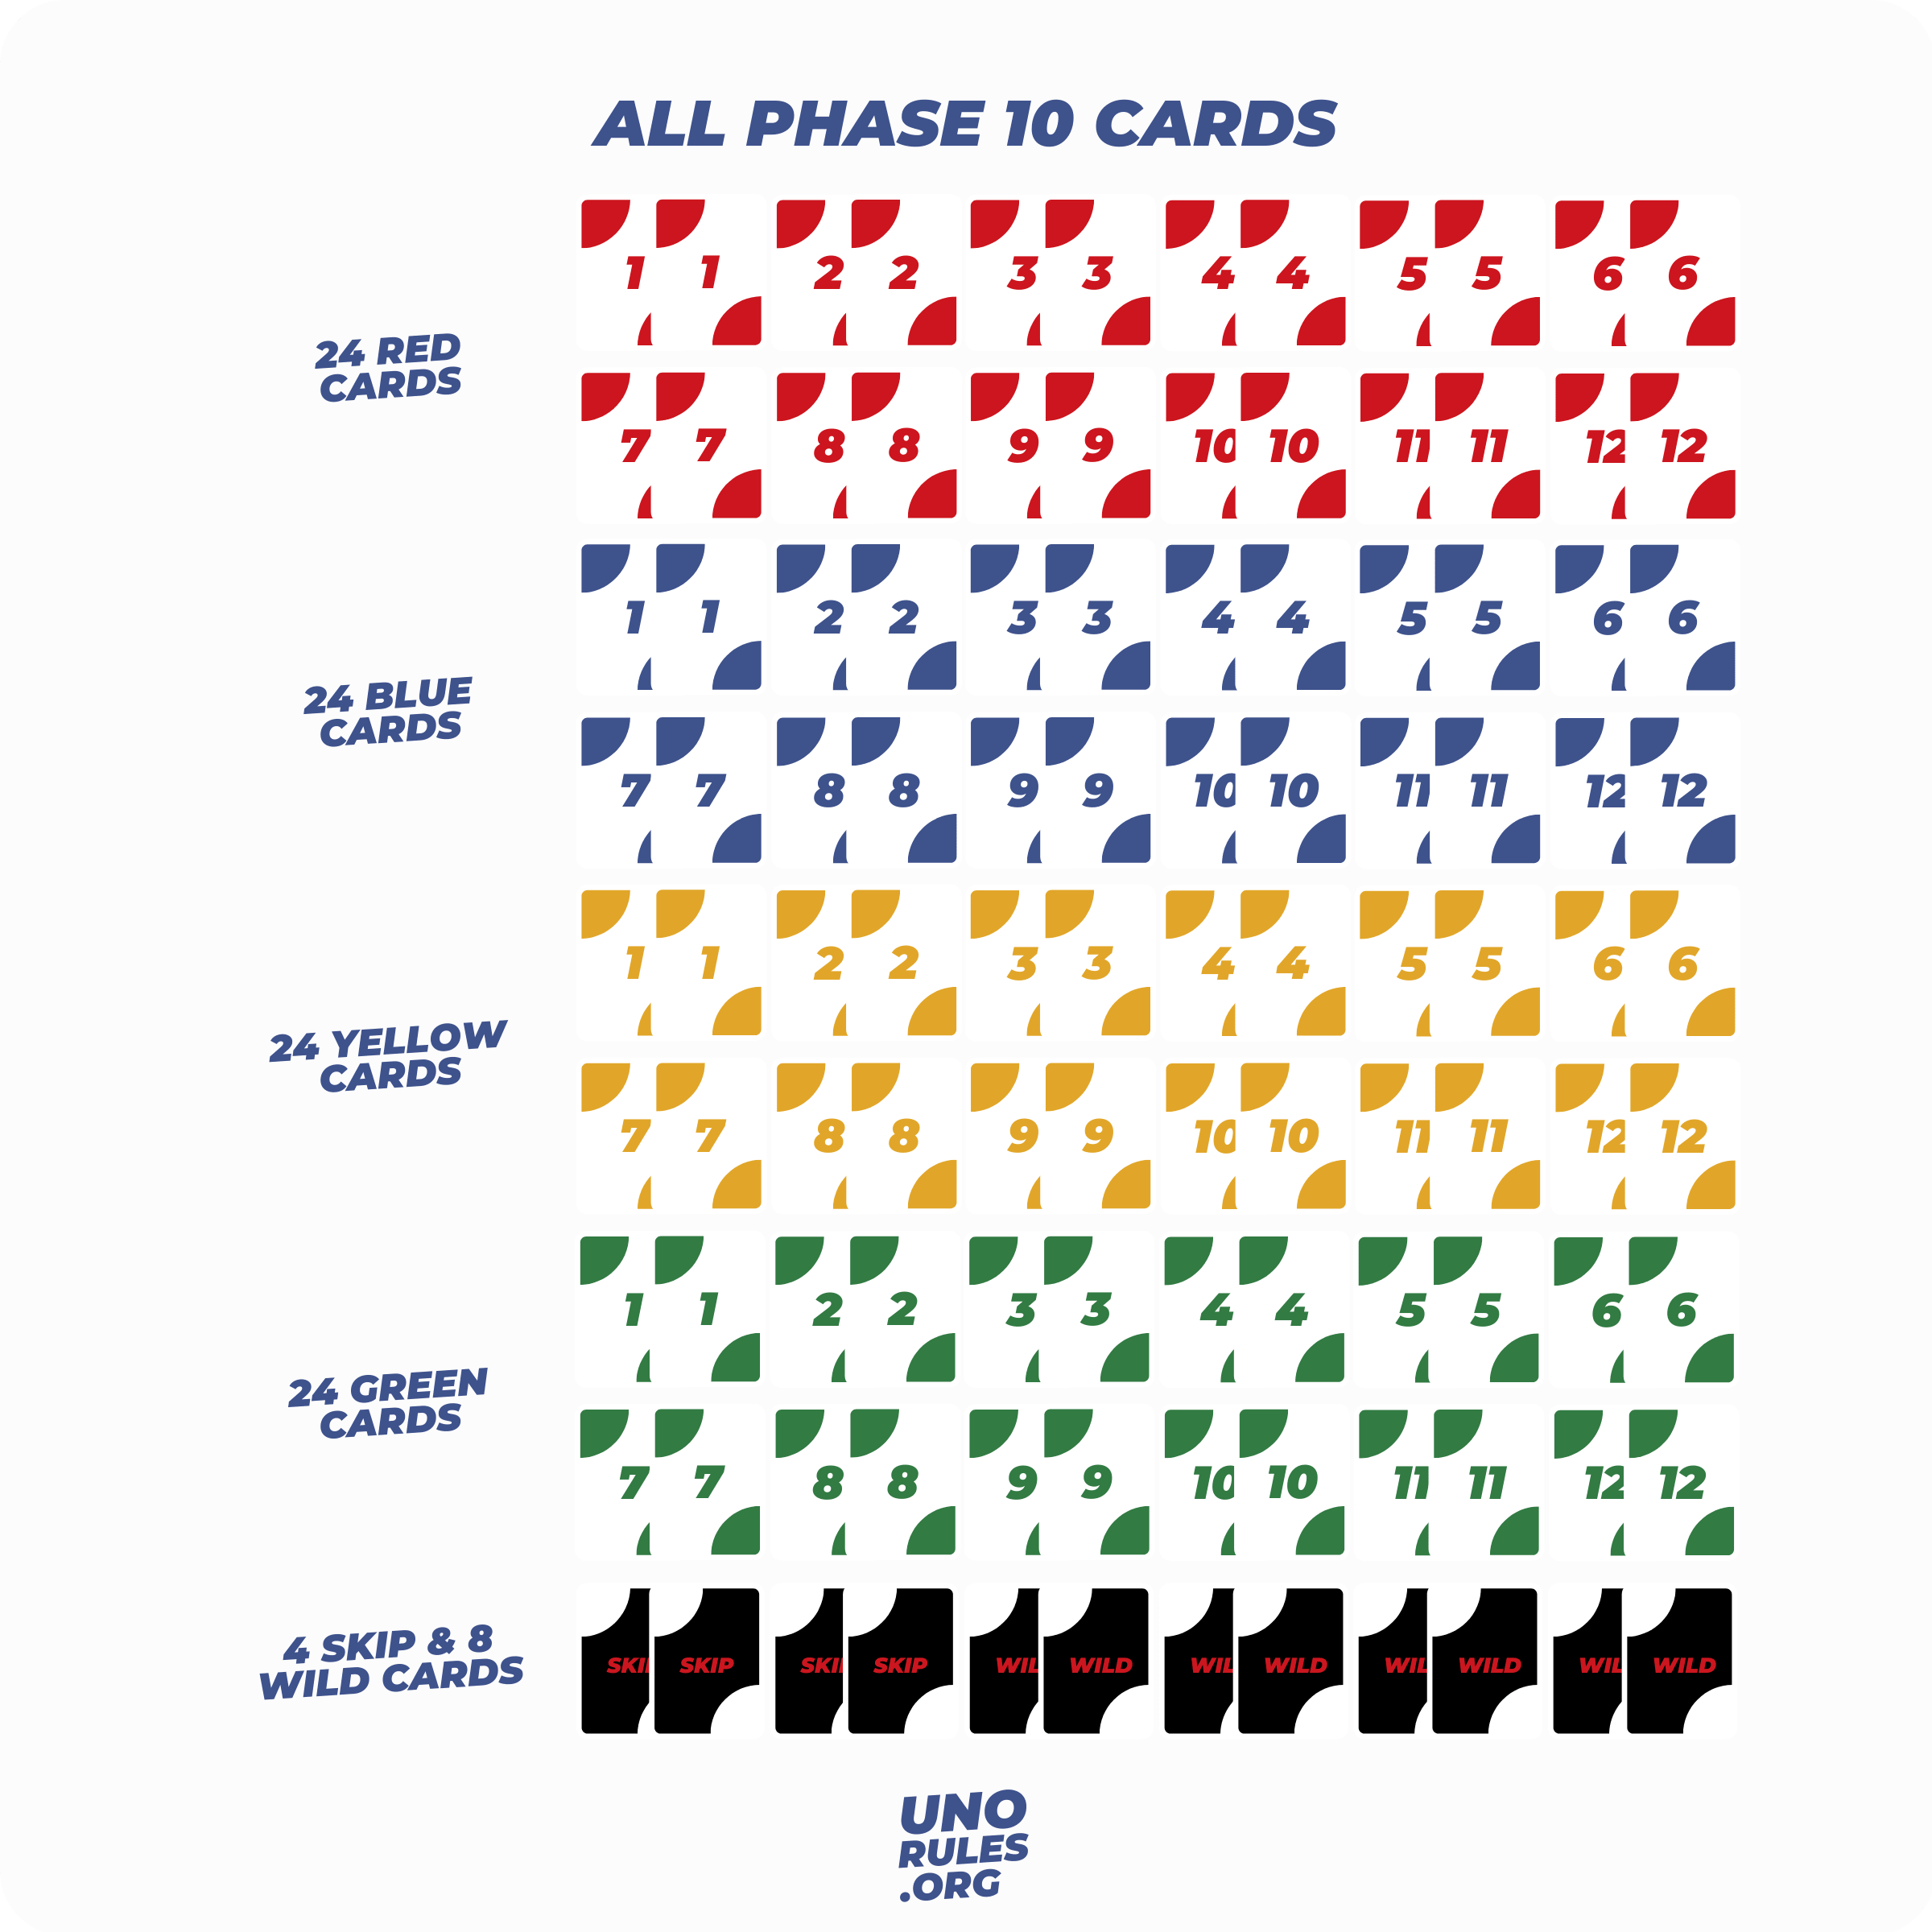 All Phase 10 cards